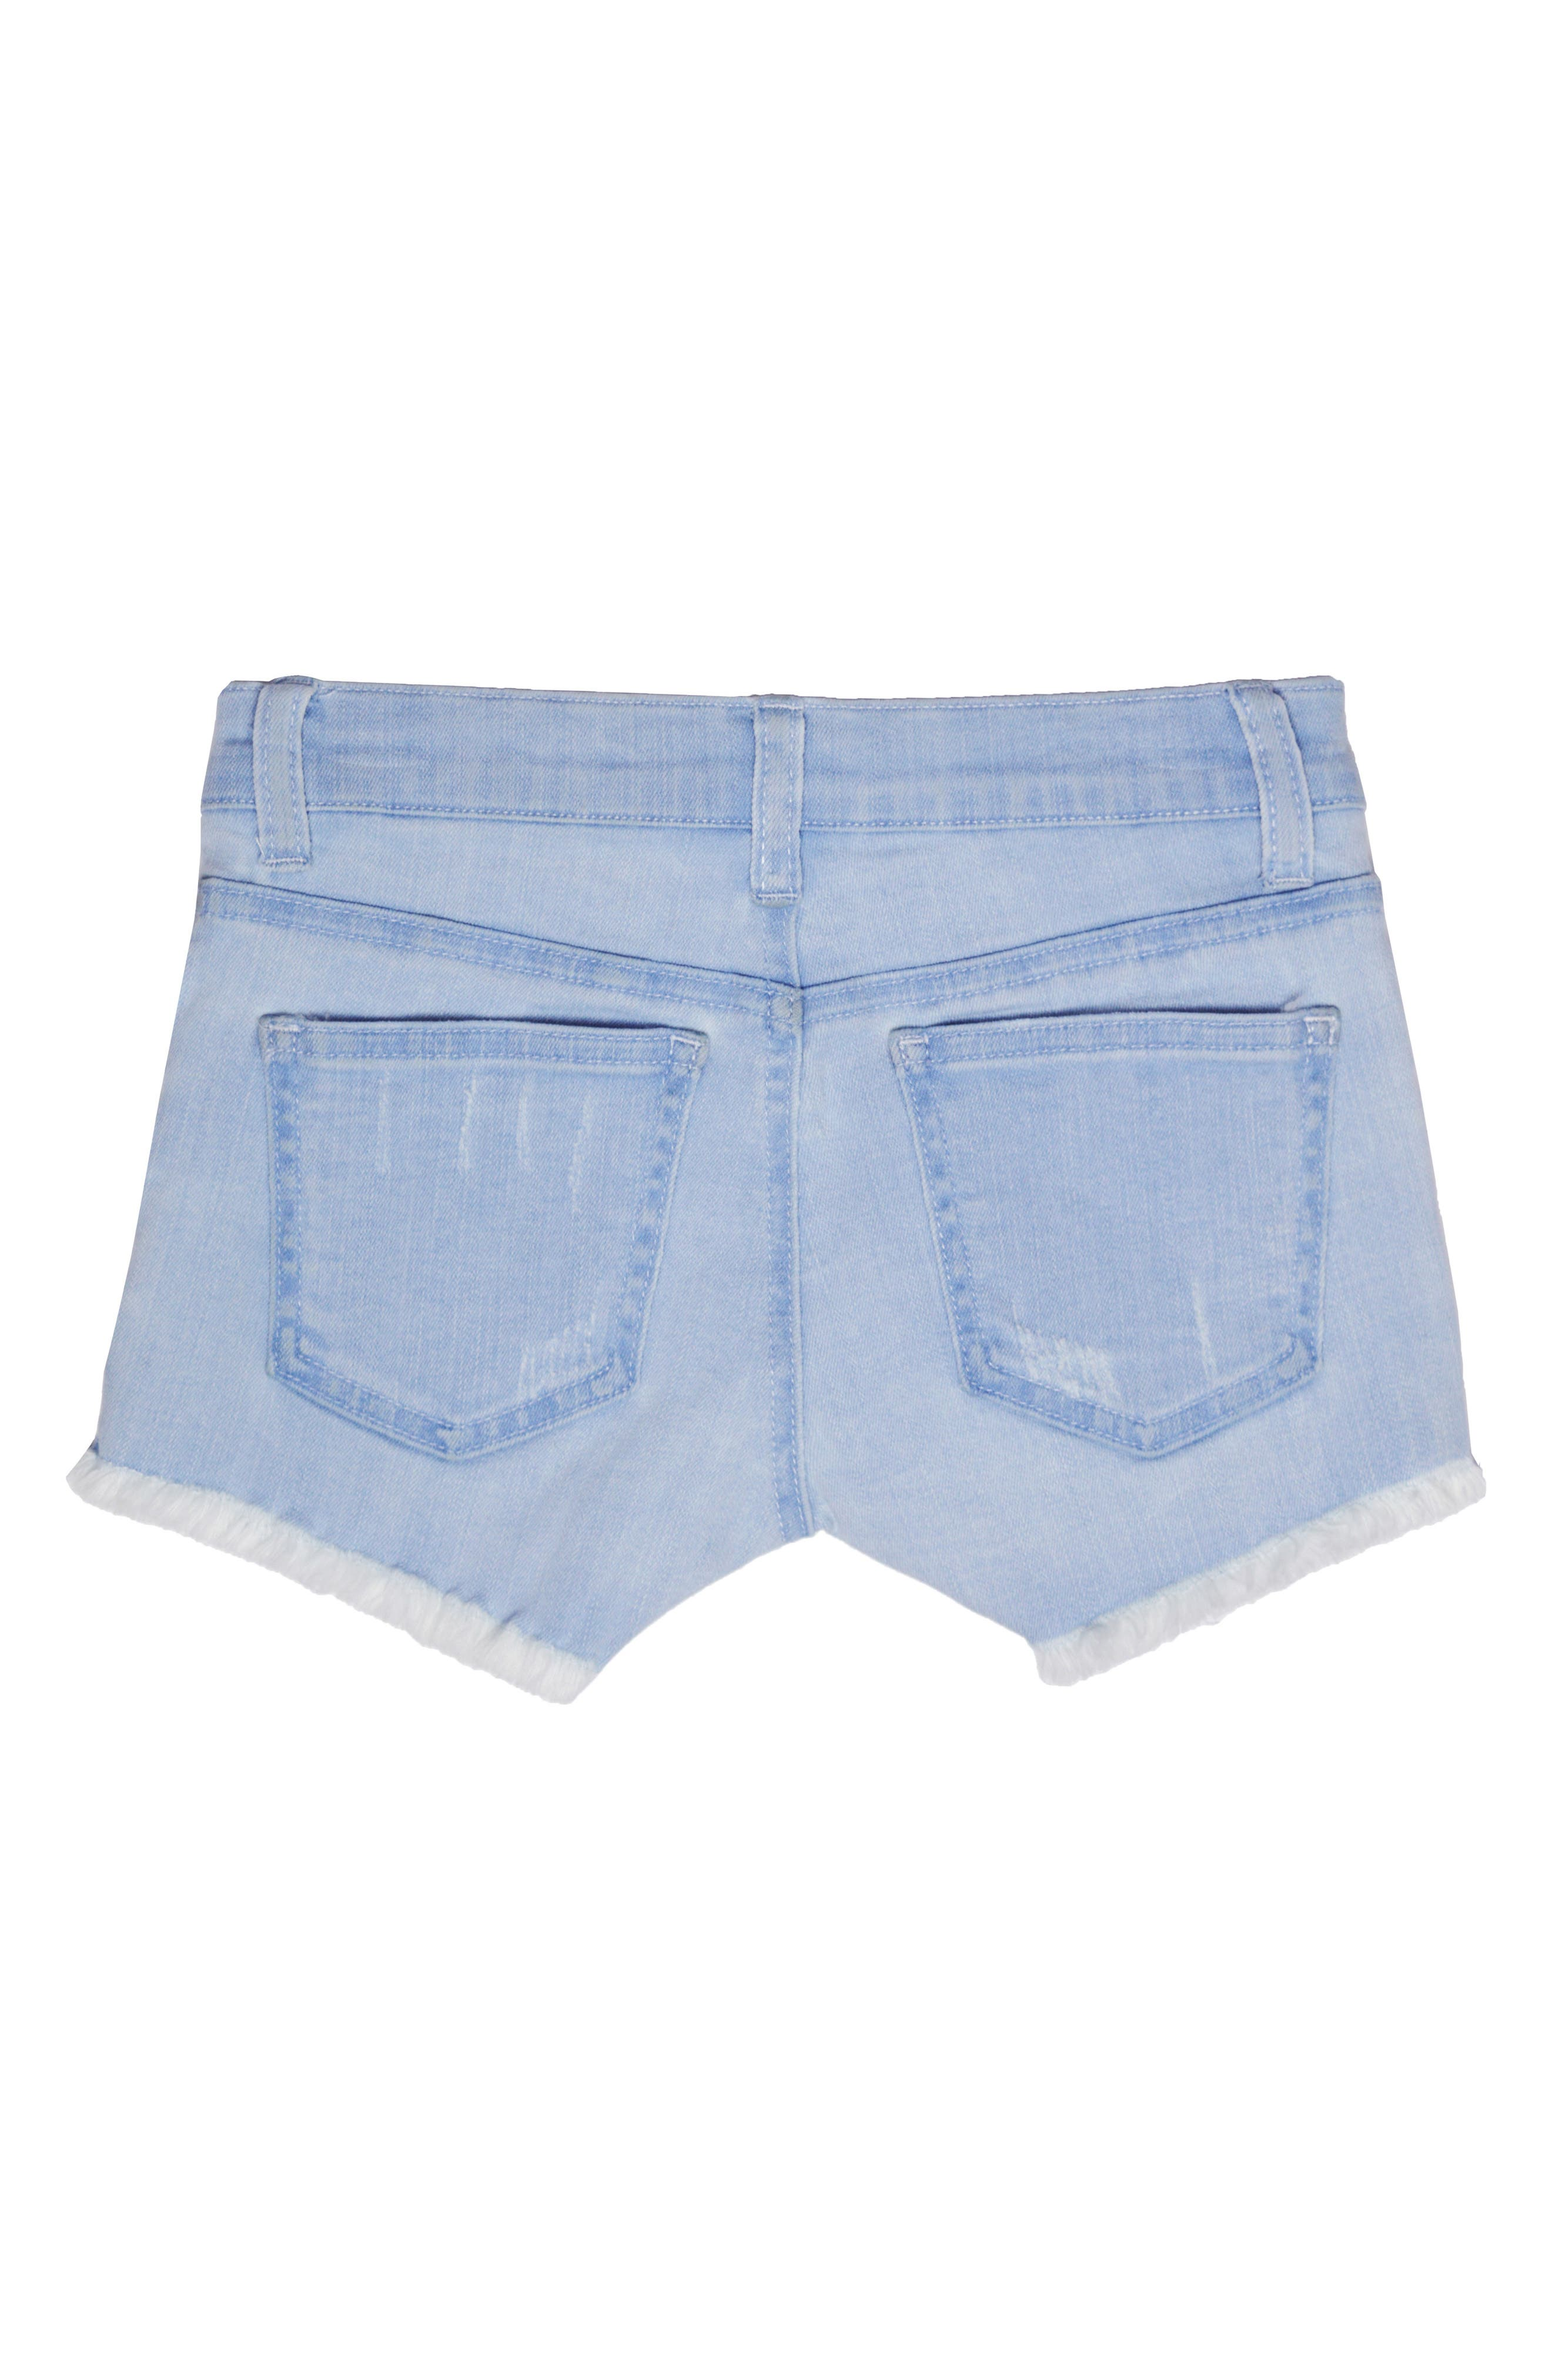 Distressed Cutoff Denim Shorts,                             Alternate thumbnail 2, color,